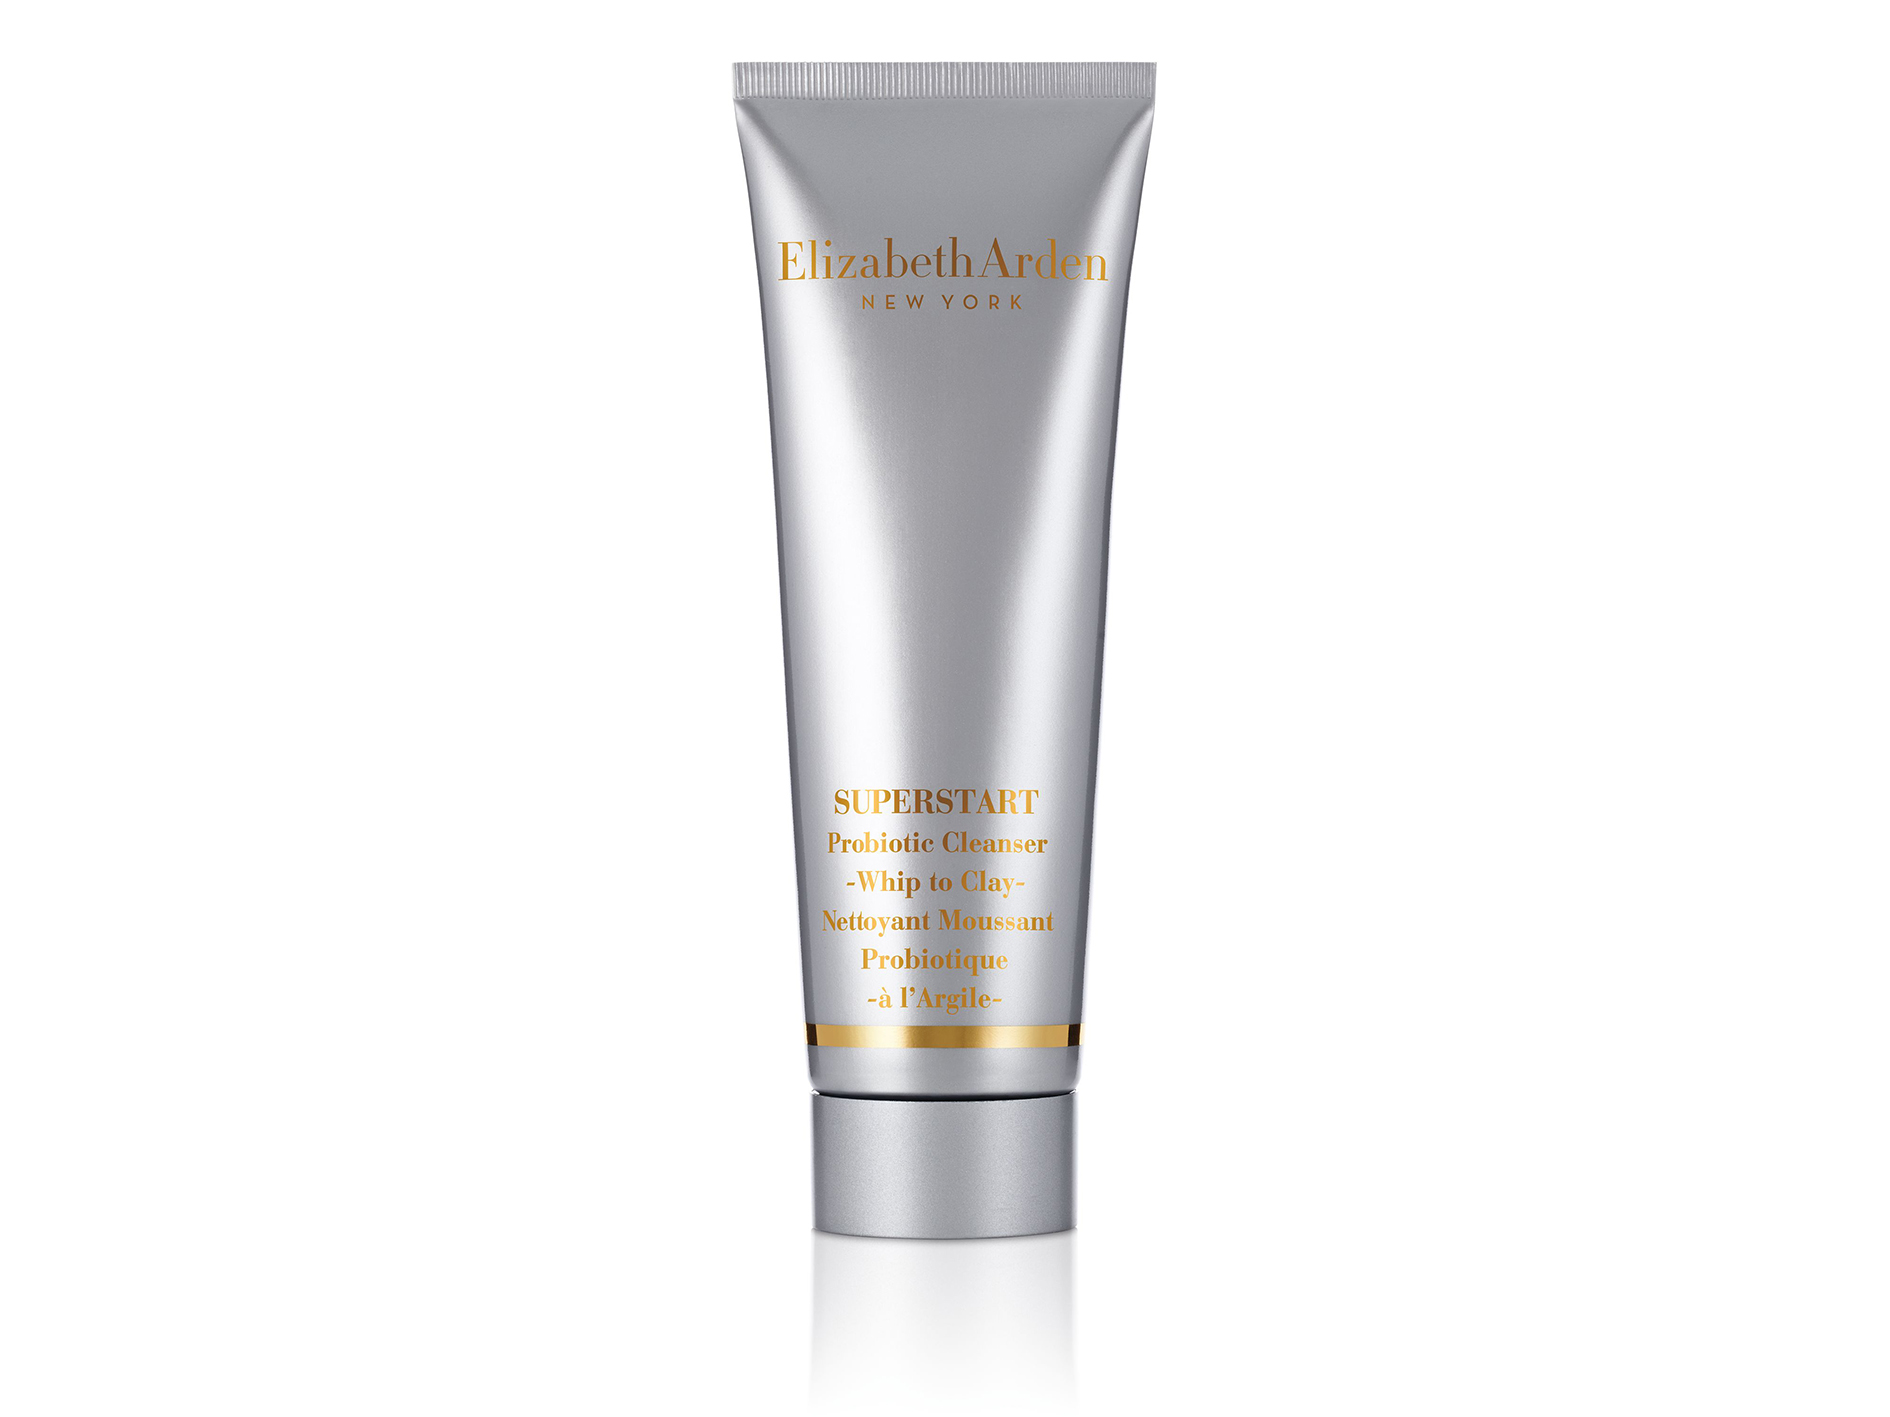 Elizabeth Arden Superstart Probiotic Cleanser, $59 - The blend of probiotics boosts skin radiance, and the mineral-rich clay whipped into a foaming cleanser may be just the boost your dull skin needs right now.